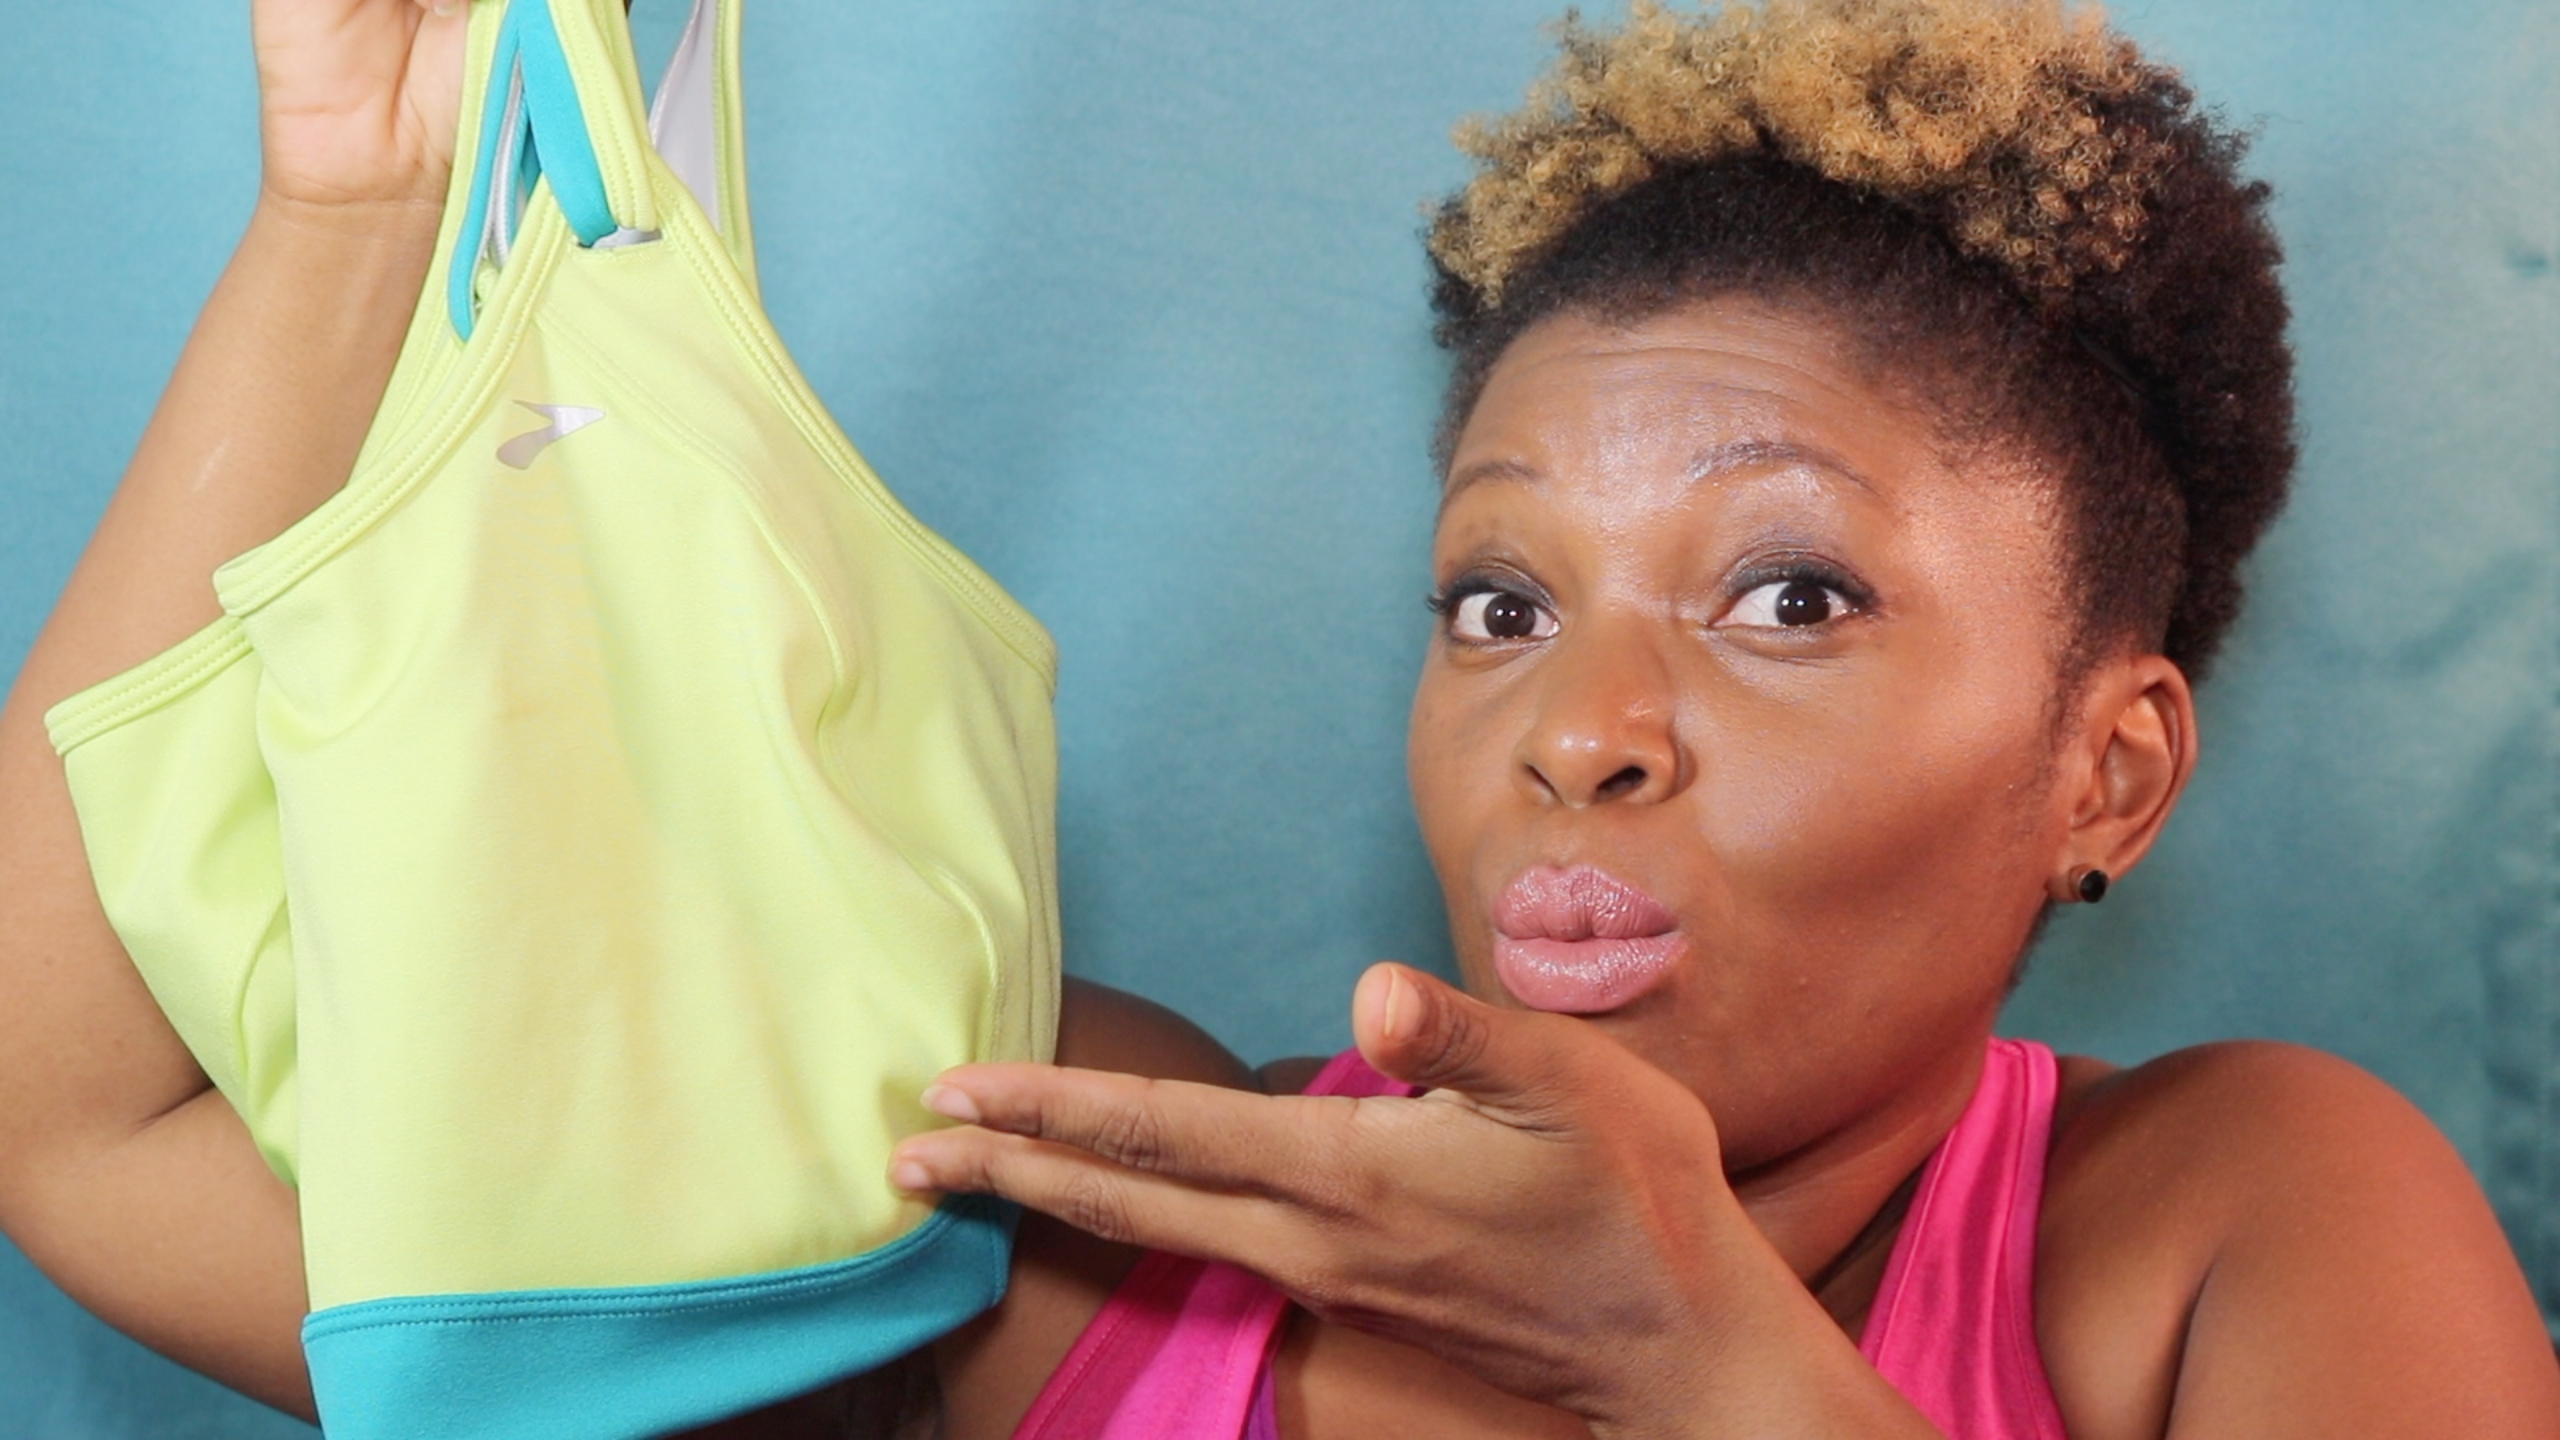 da1e97e0b4e The Affordable Sports Bras Guide for Women With Large Breasts | Just ...